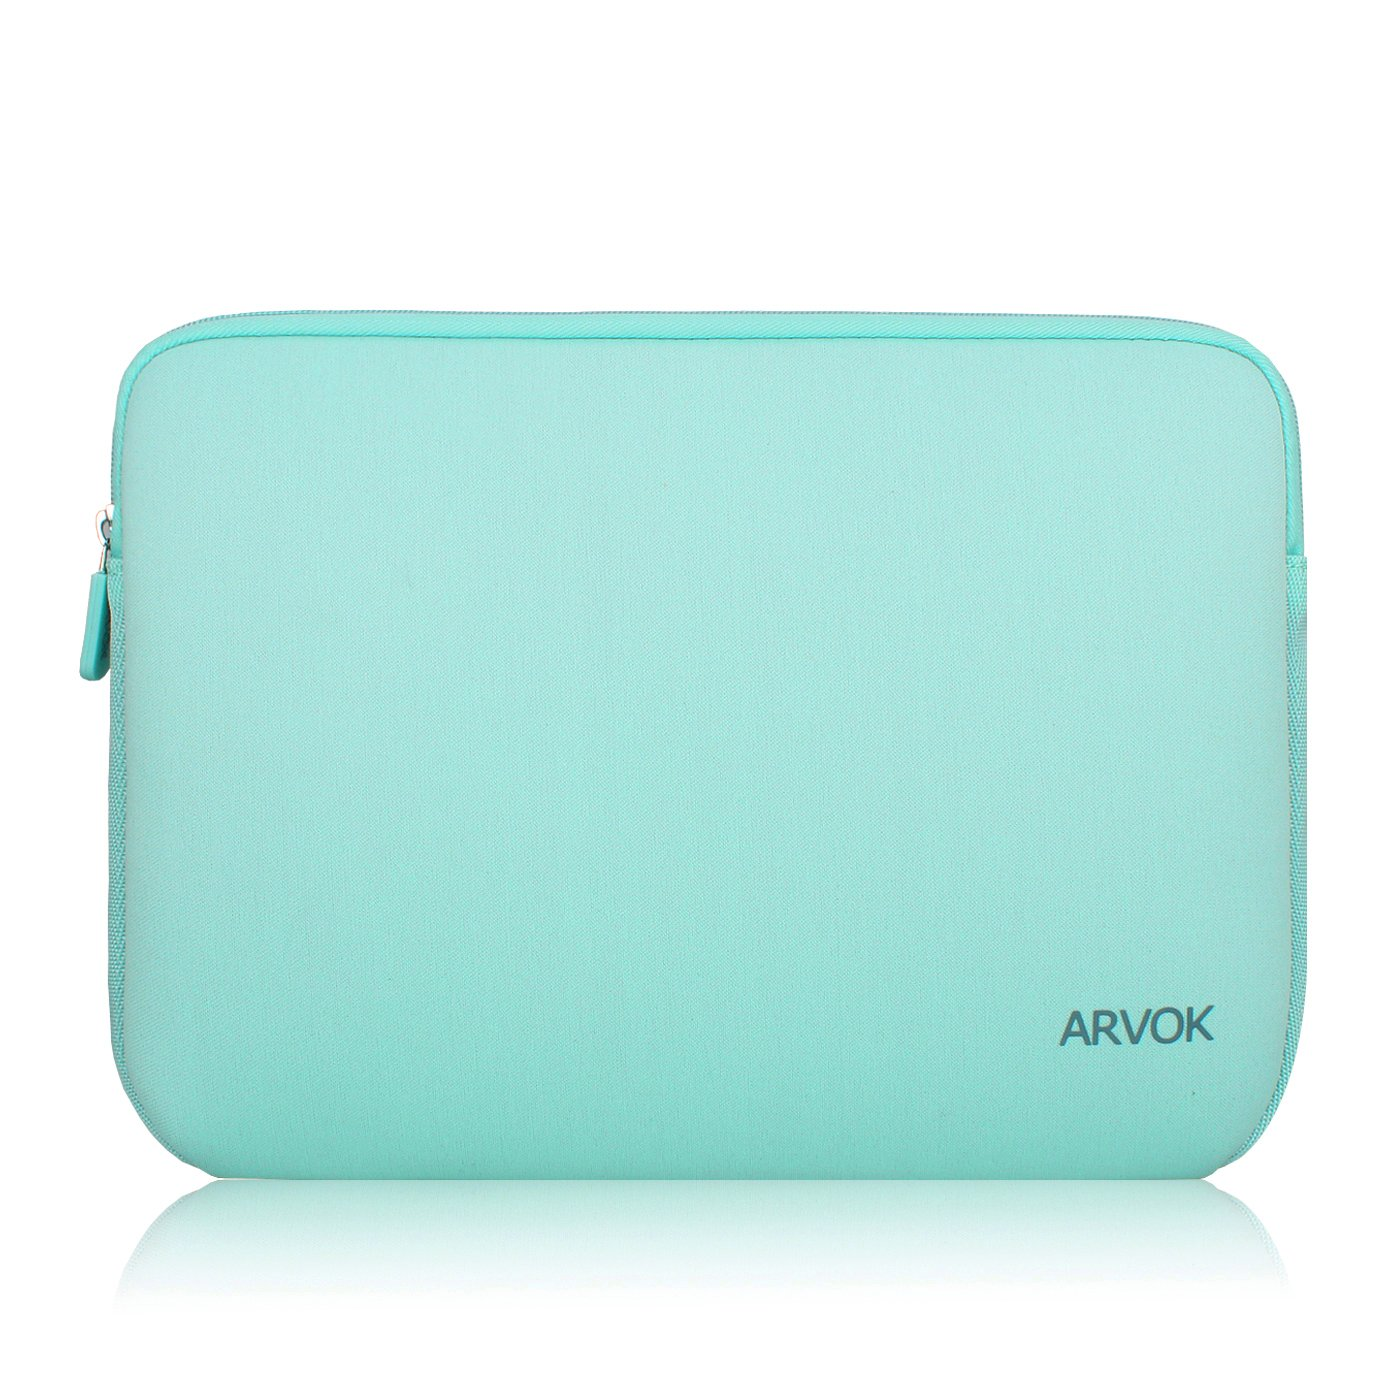 Arvok 15-15.6 Inch Laptop Sleeve Multi-Color & Size Choices Case/Water-resistant Neoprene Notebook Computer Pocket Tablet Briefcase Carrying Bag/Pouch Skin ...